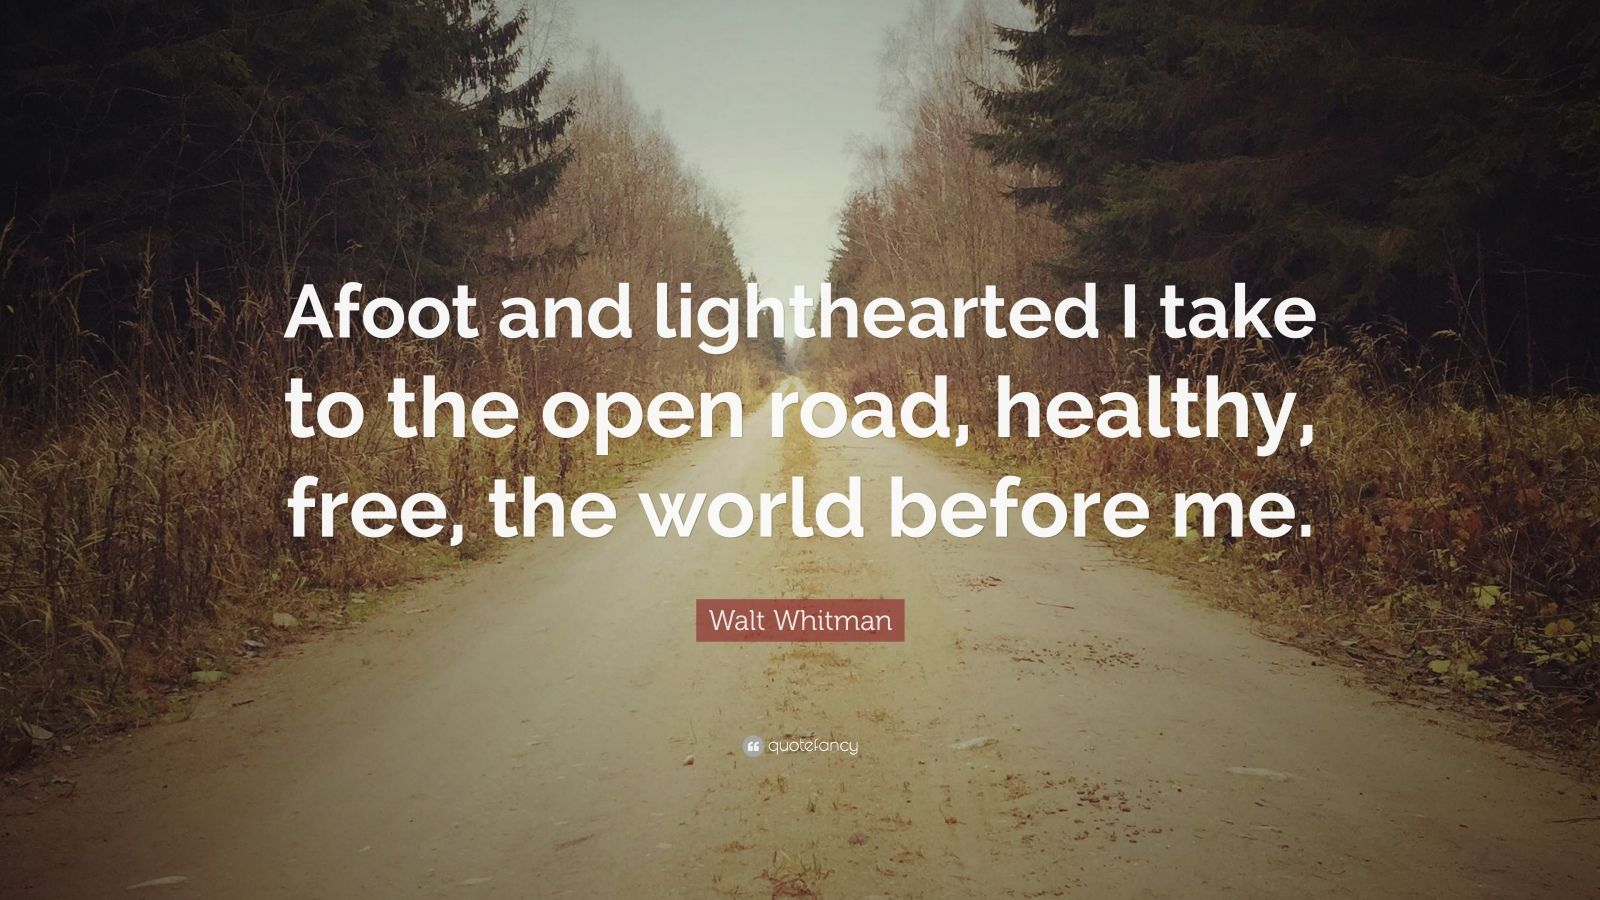 """Walt Whitman Quote: """"Afoot and lighthearted I take to the open road, healthy, free, the world before me."""""""